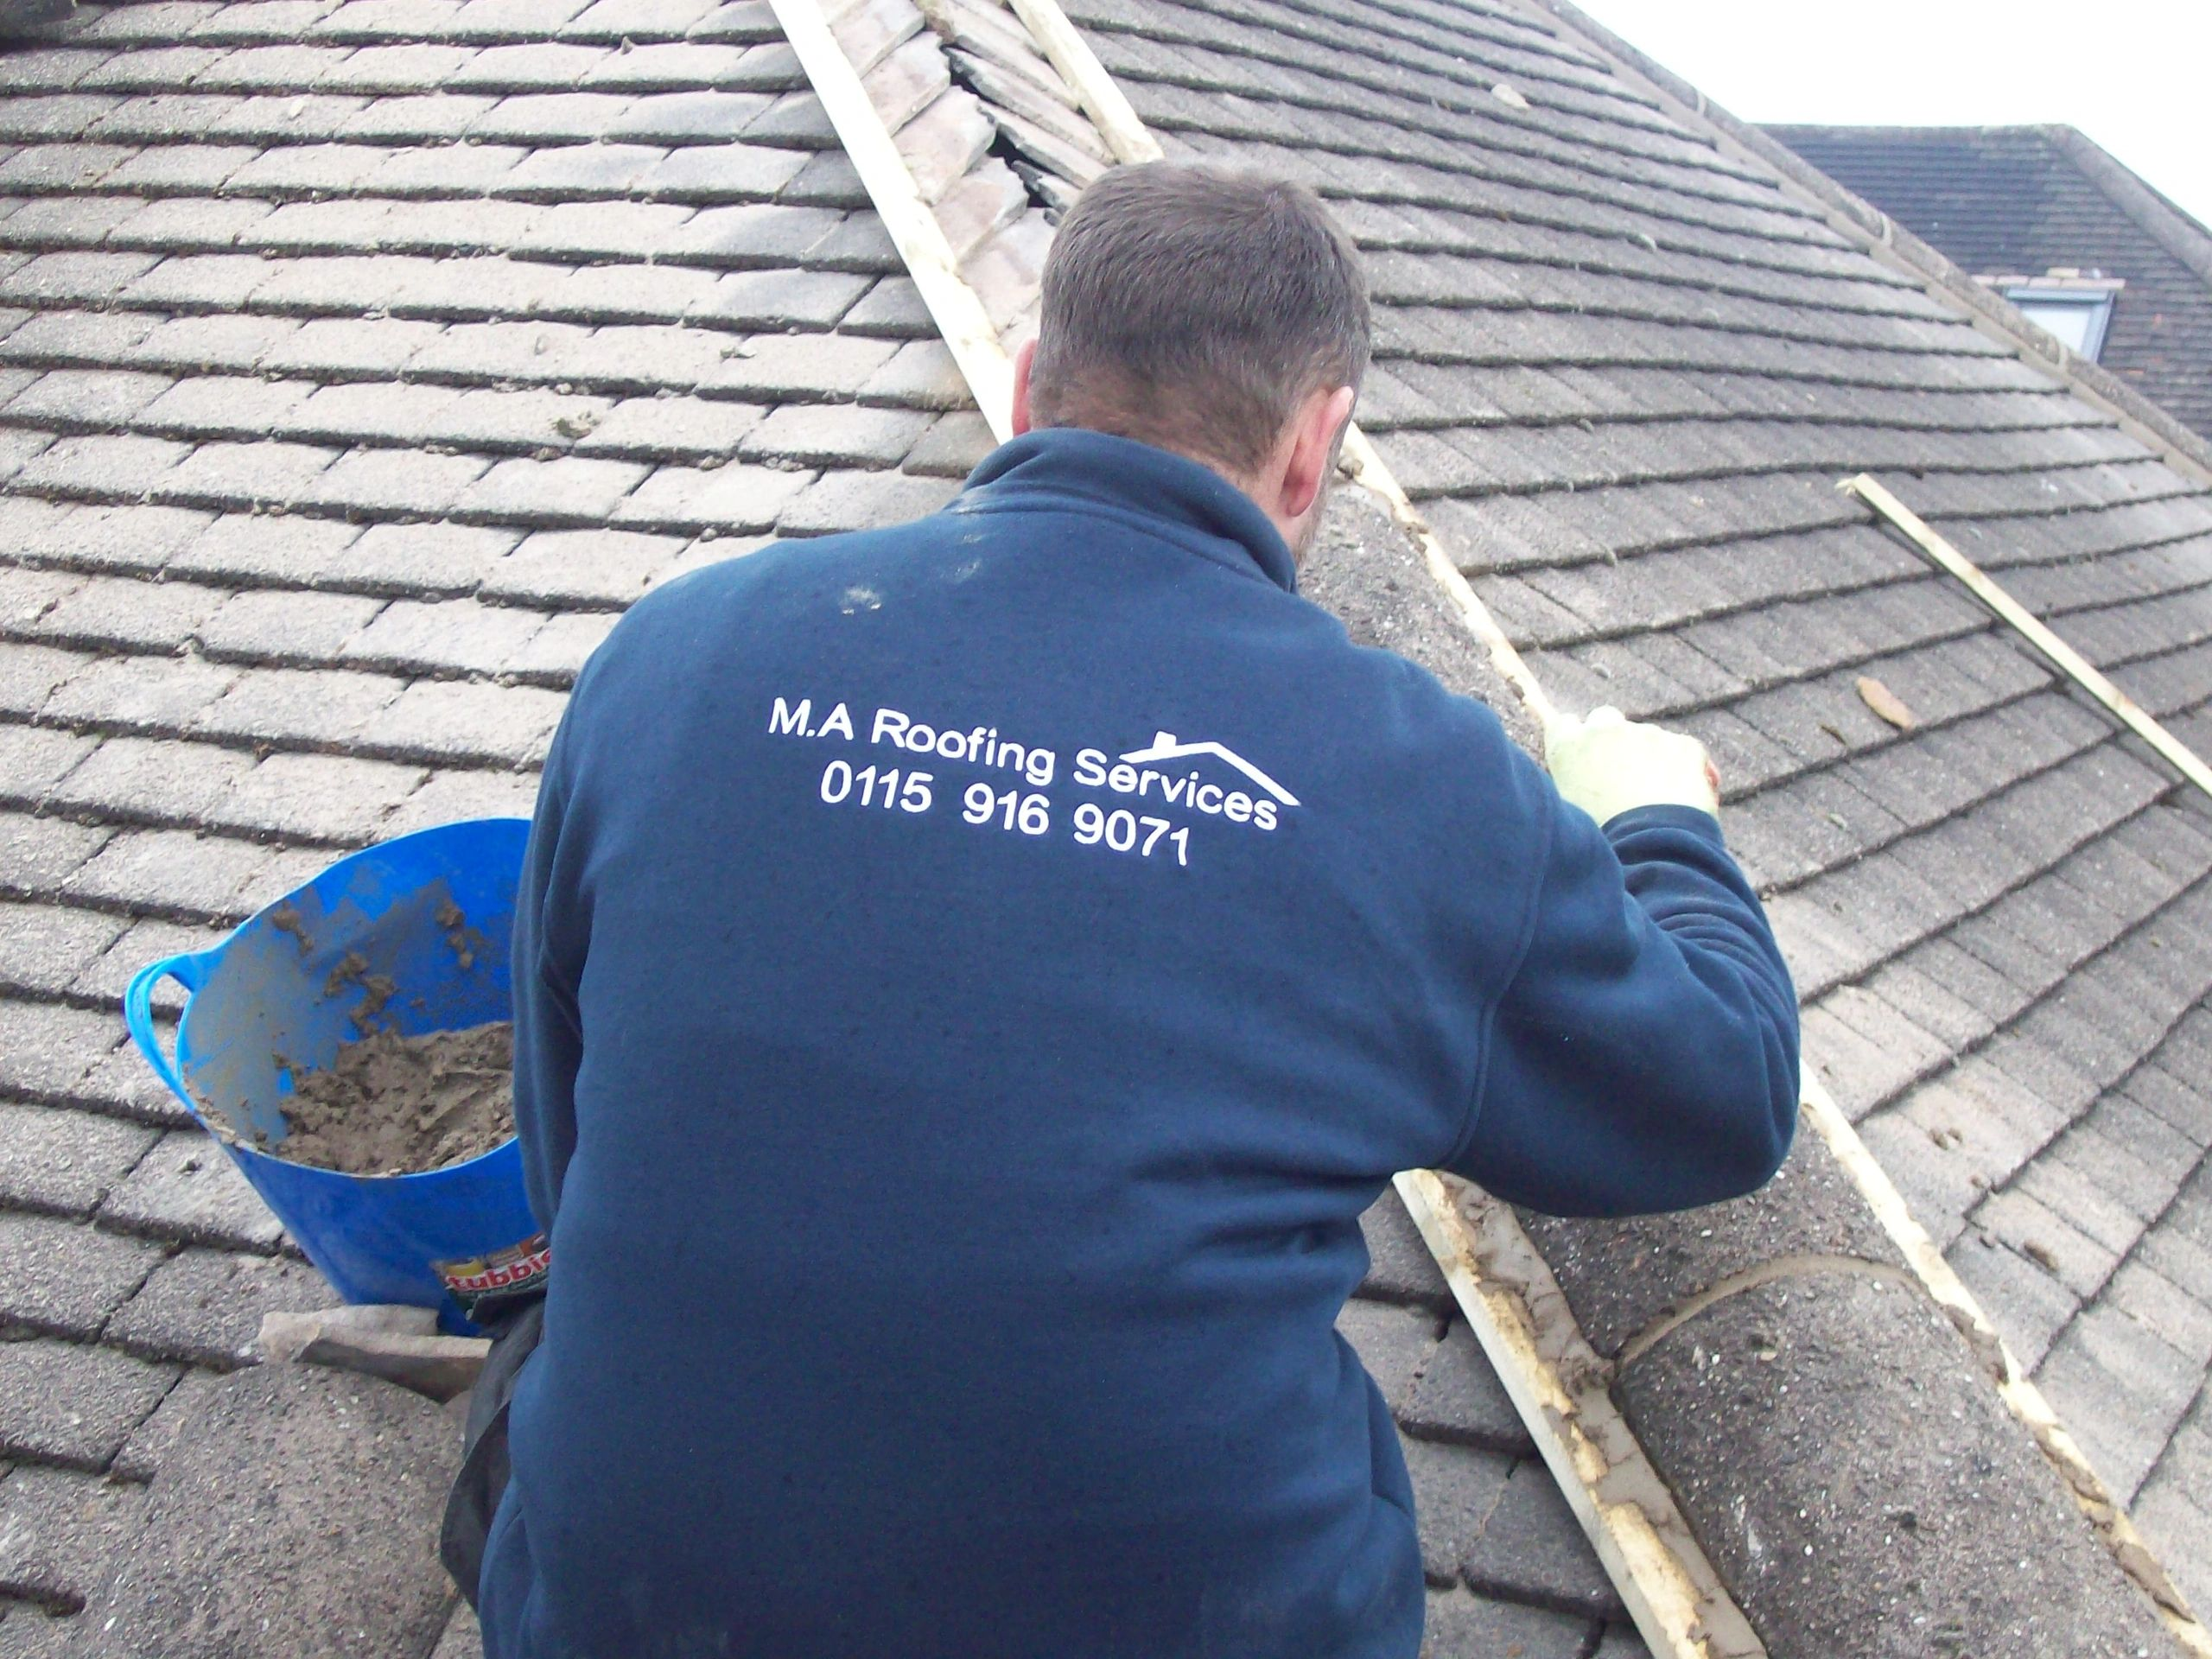 Services M A Roofing Services